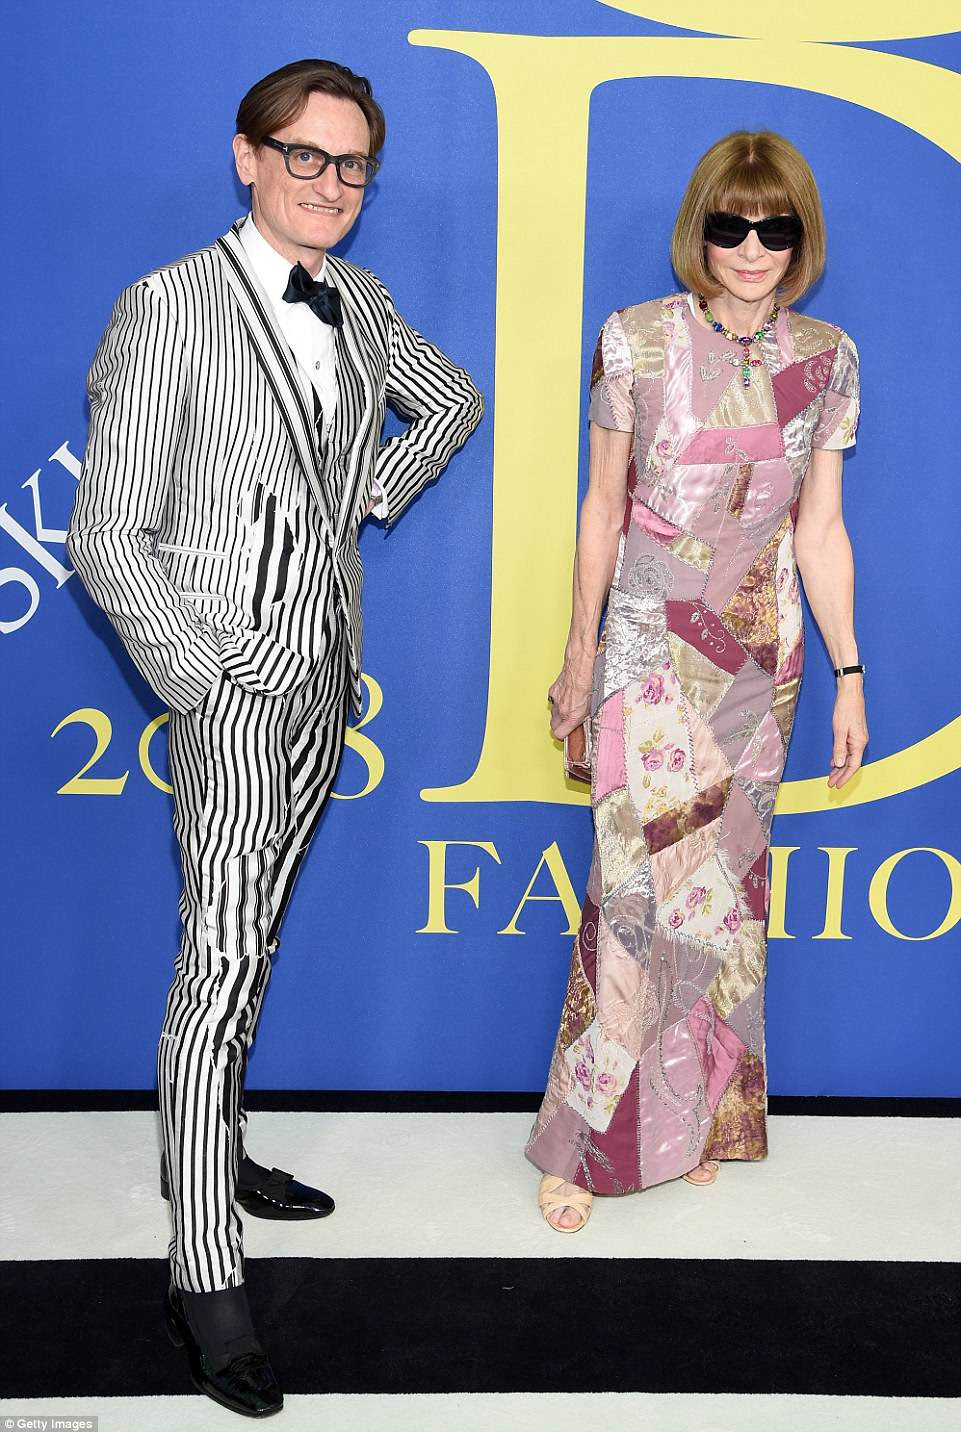 What a duo! Hamish Bowles and Anna Wintour graced the red carpet together